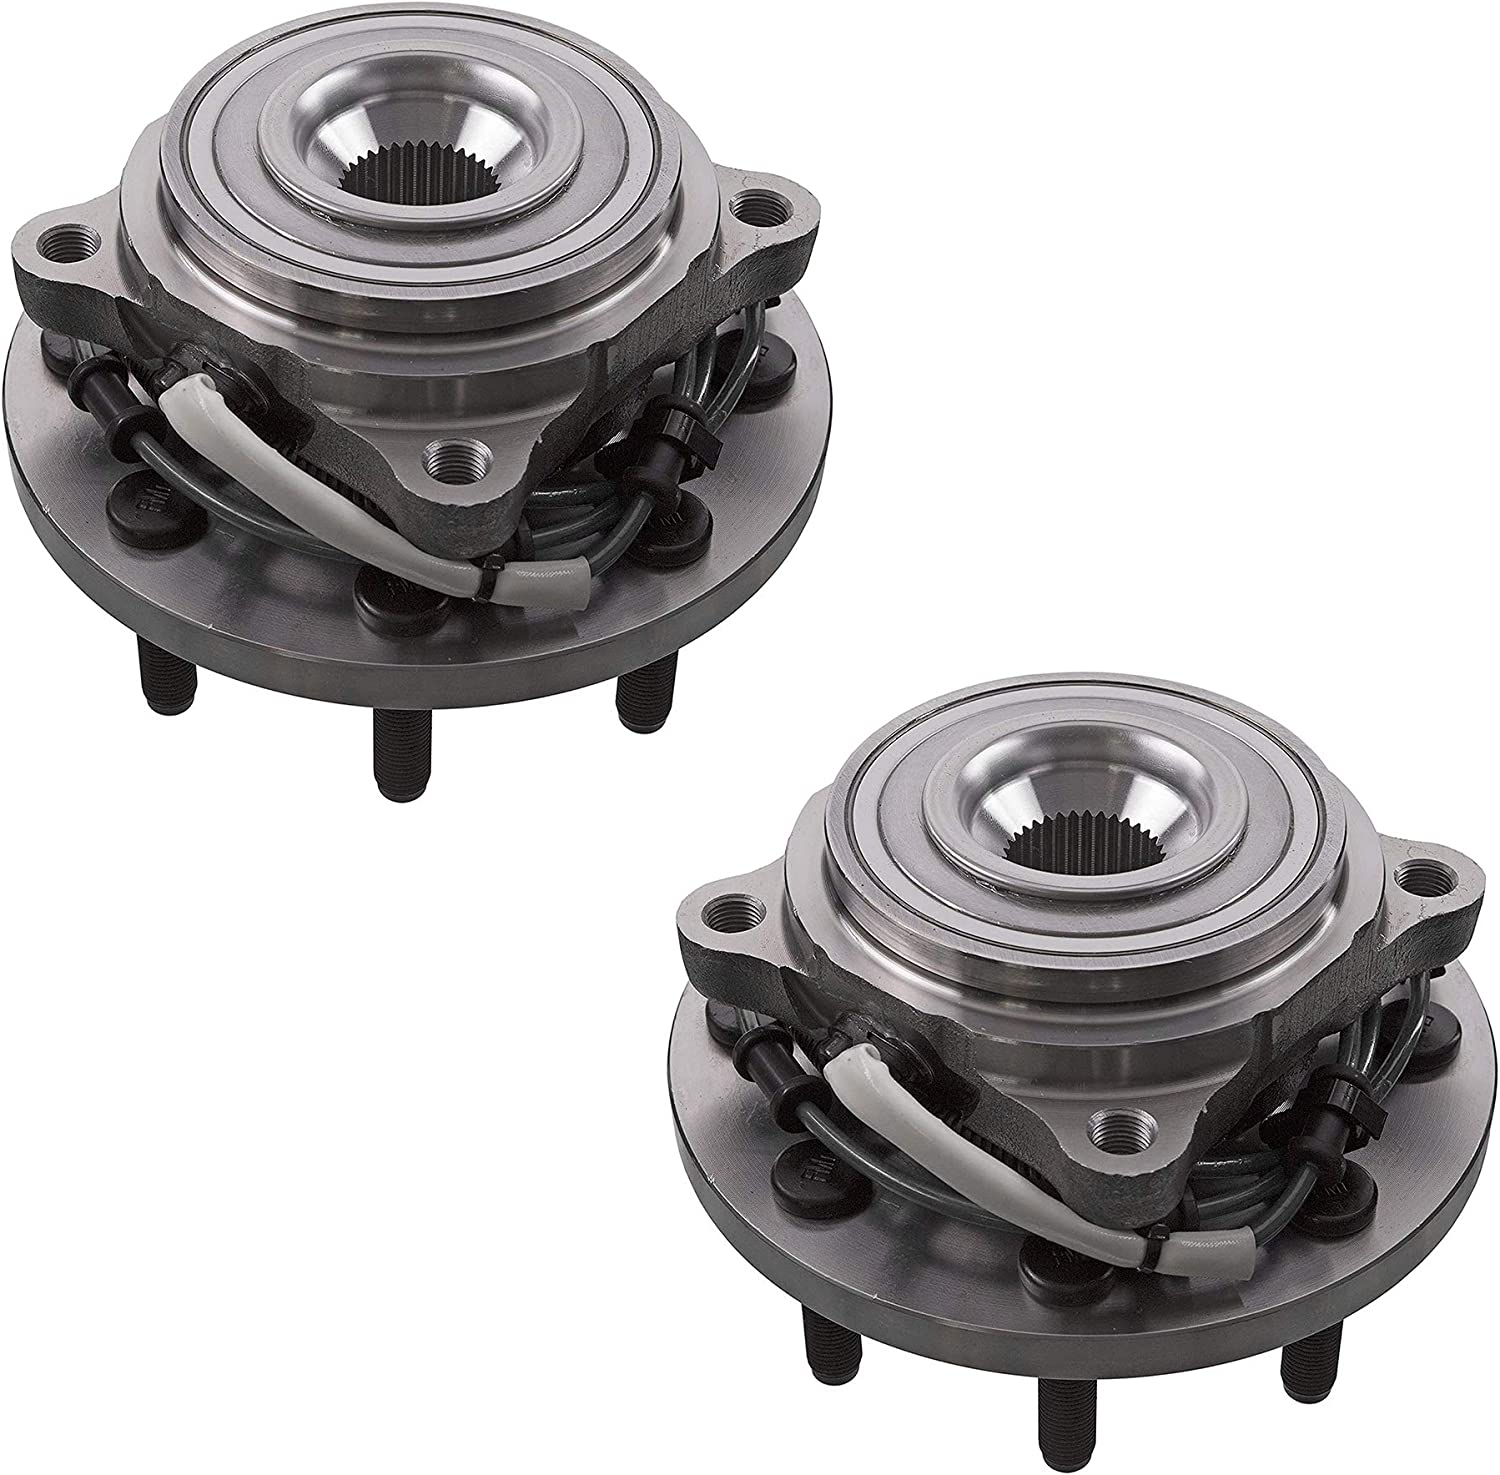 Two Front Wheel Bearing and Hub We OFFer at cheap prices Assembly Ram 515162 WH515162 Nashville-Davidson Mall for